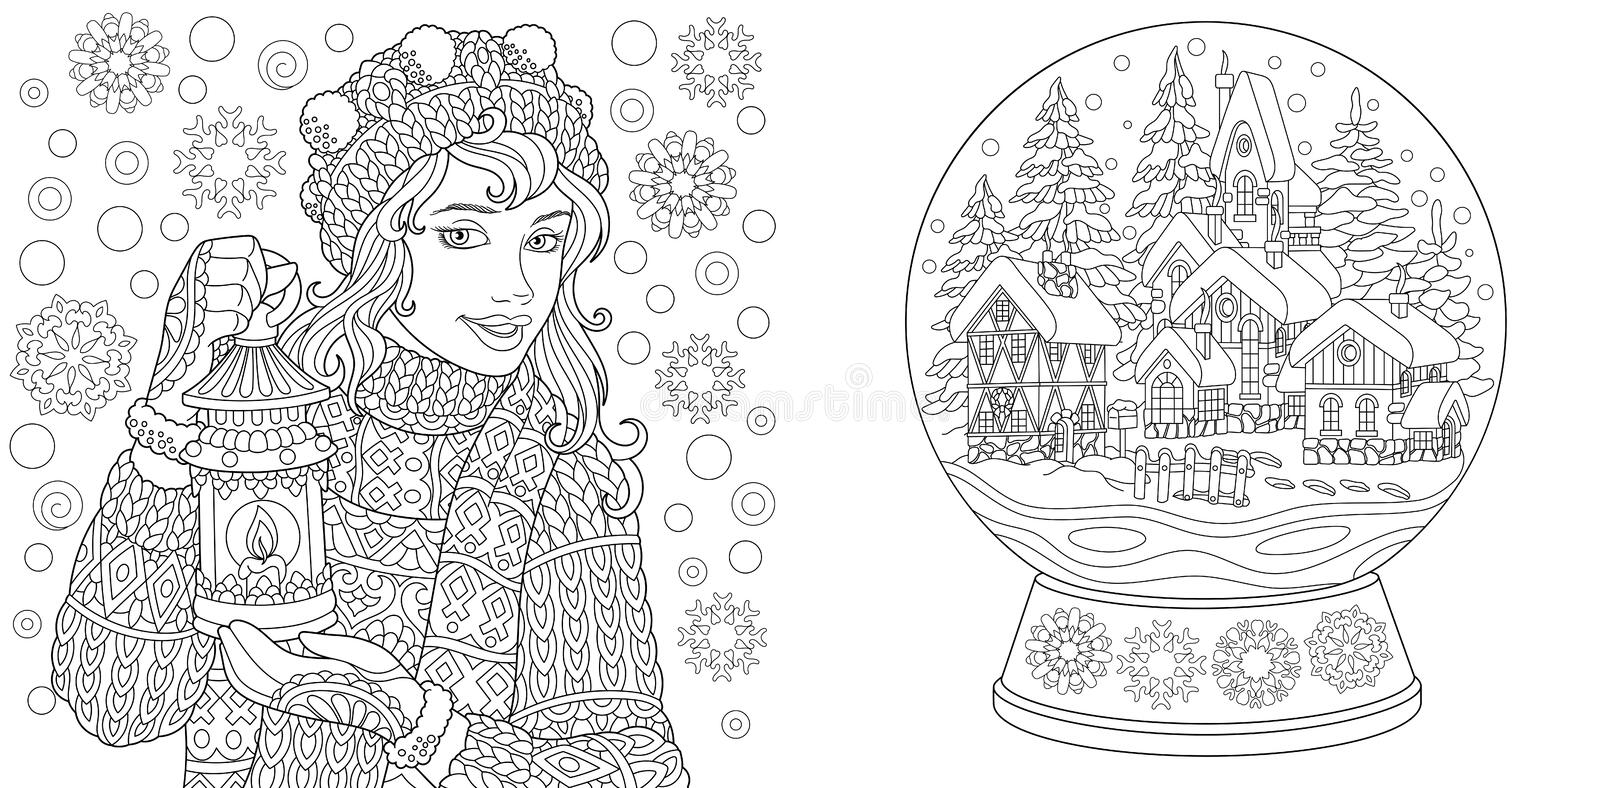 Coloring Pages. Coloring Book for adults. Colouring pictures with winter girl and crystal snow ball. Antistress freehand sketch. Drawing with doodle and stock illustration